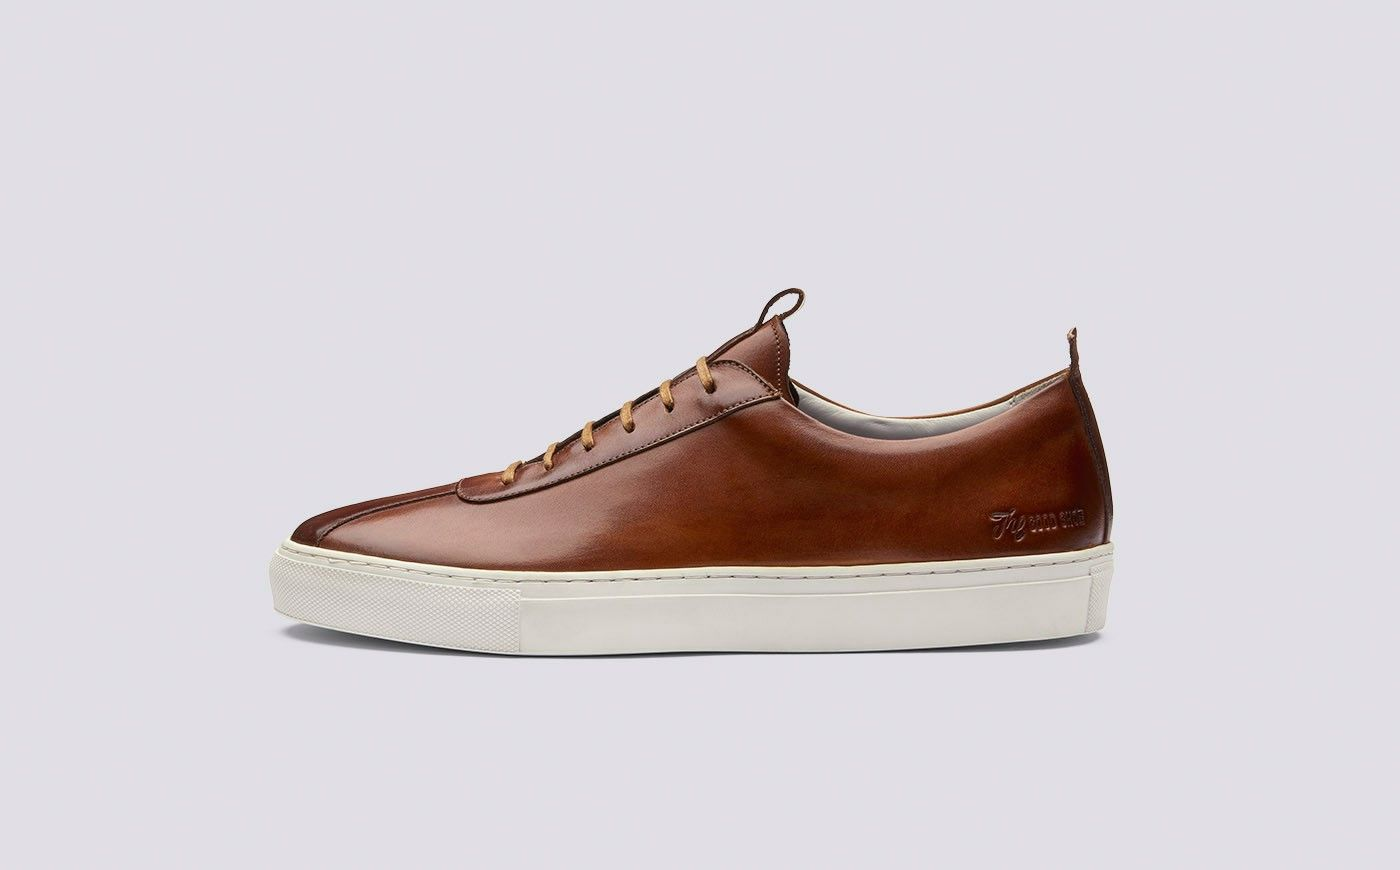 Tan Hand-Painted Calf Leather Hi Top Sneakers Grenson nEDvUc4